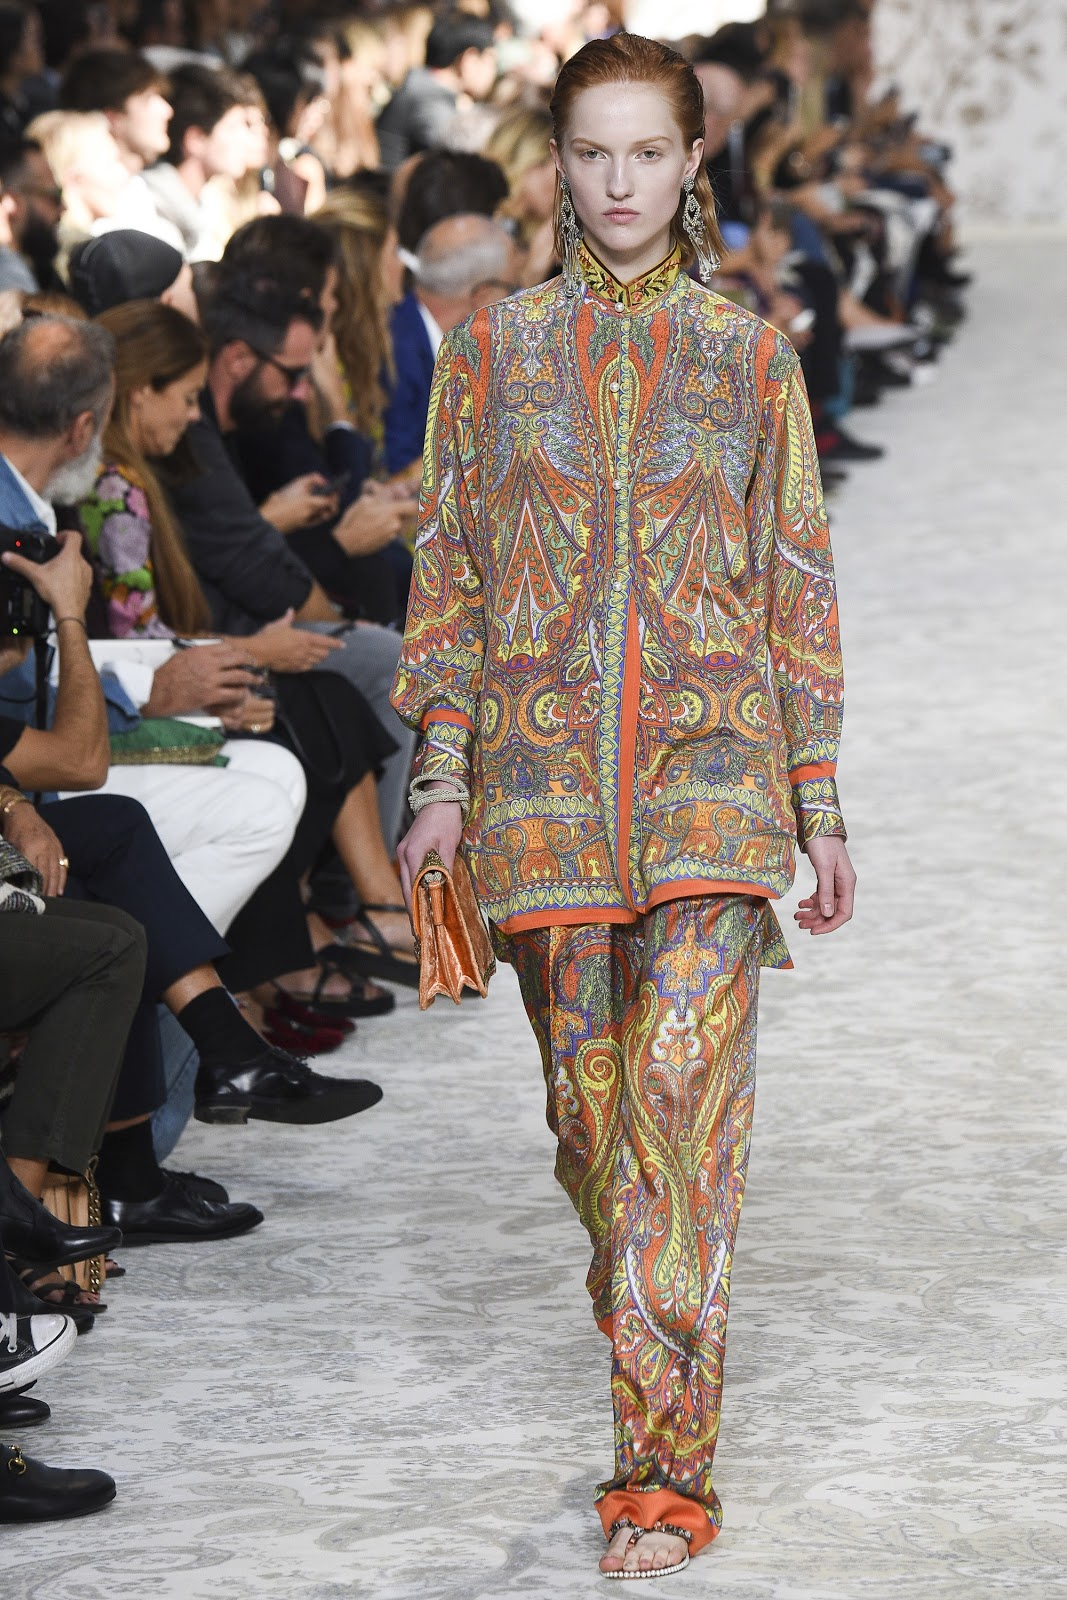 Etro Spring/Summer 2018 Paris Fashion Week.